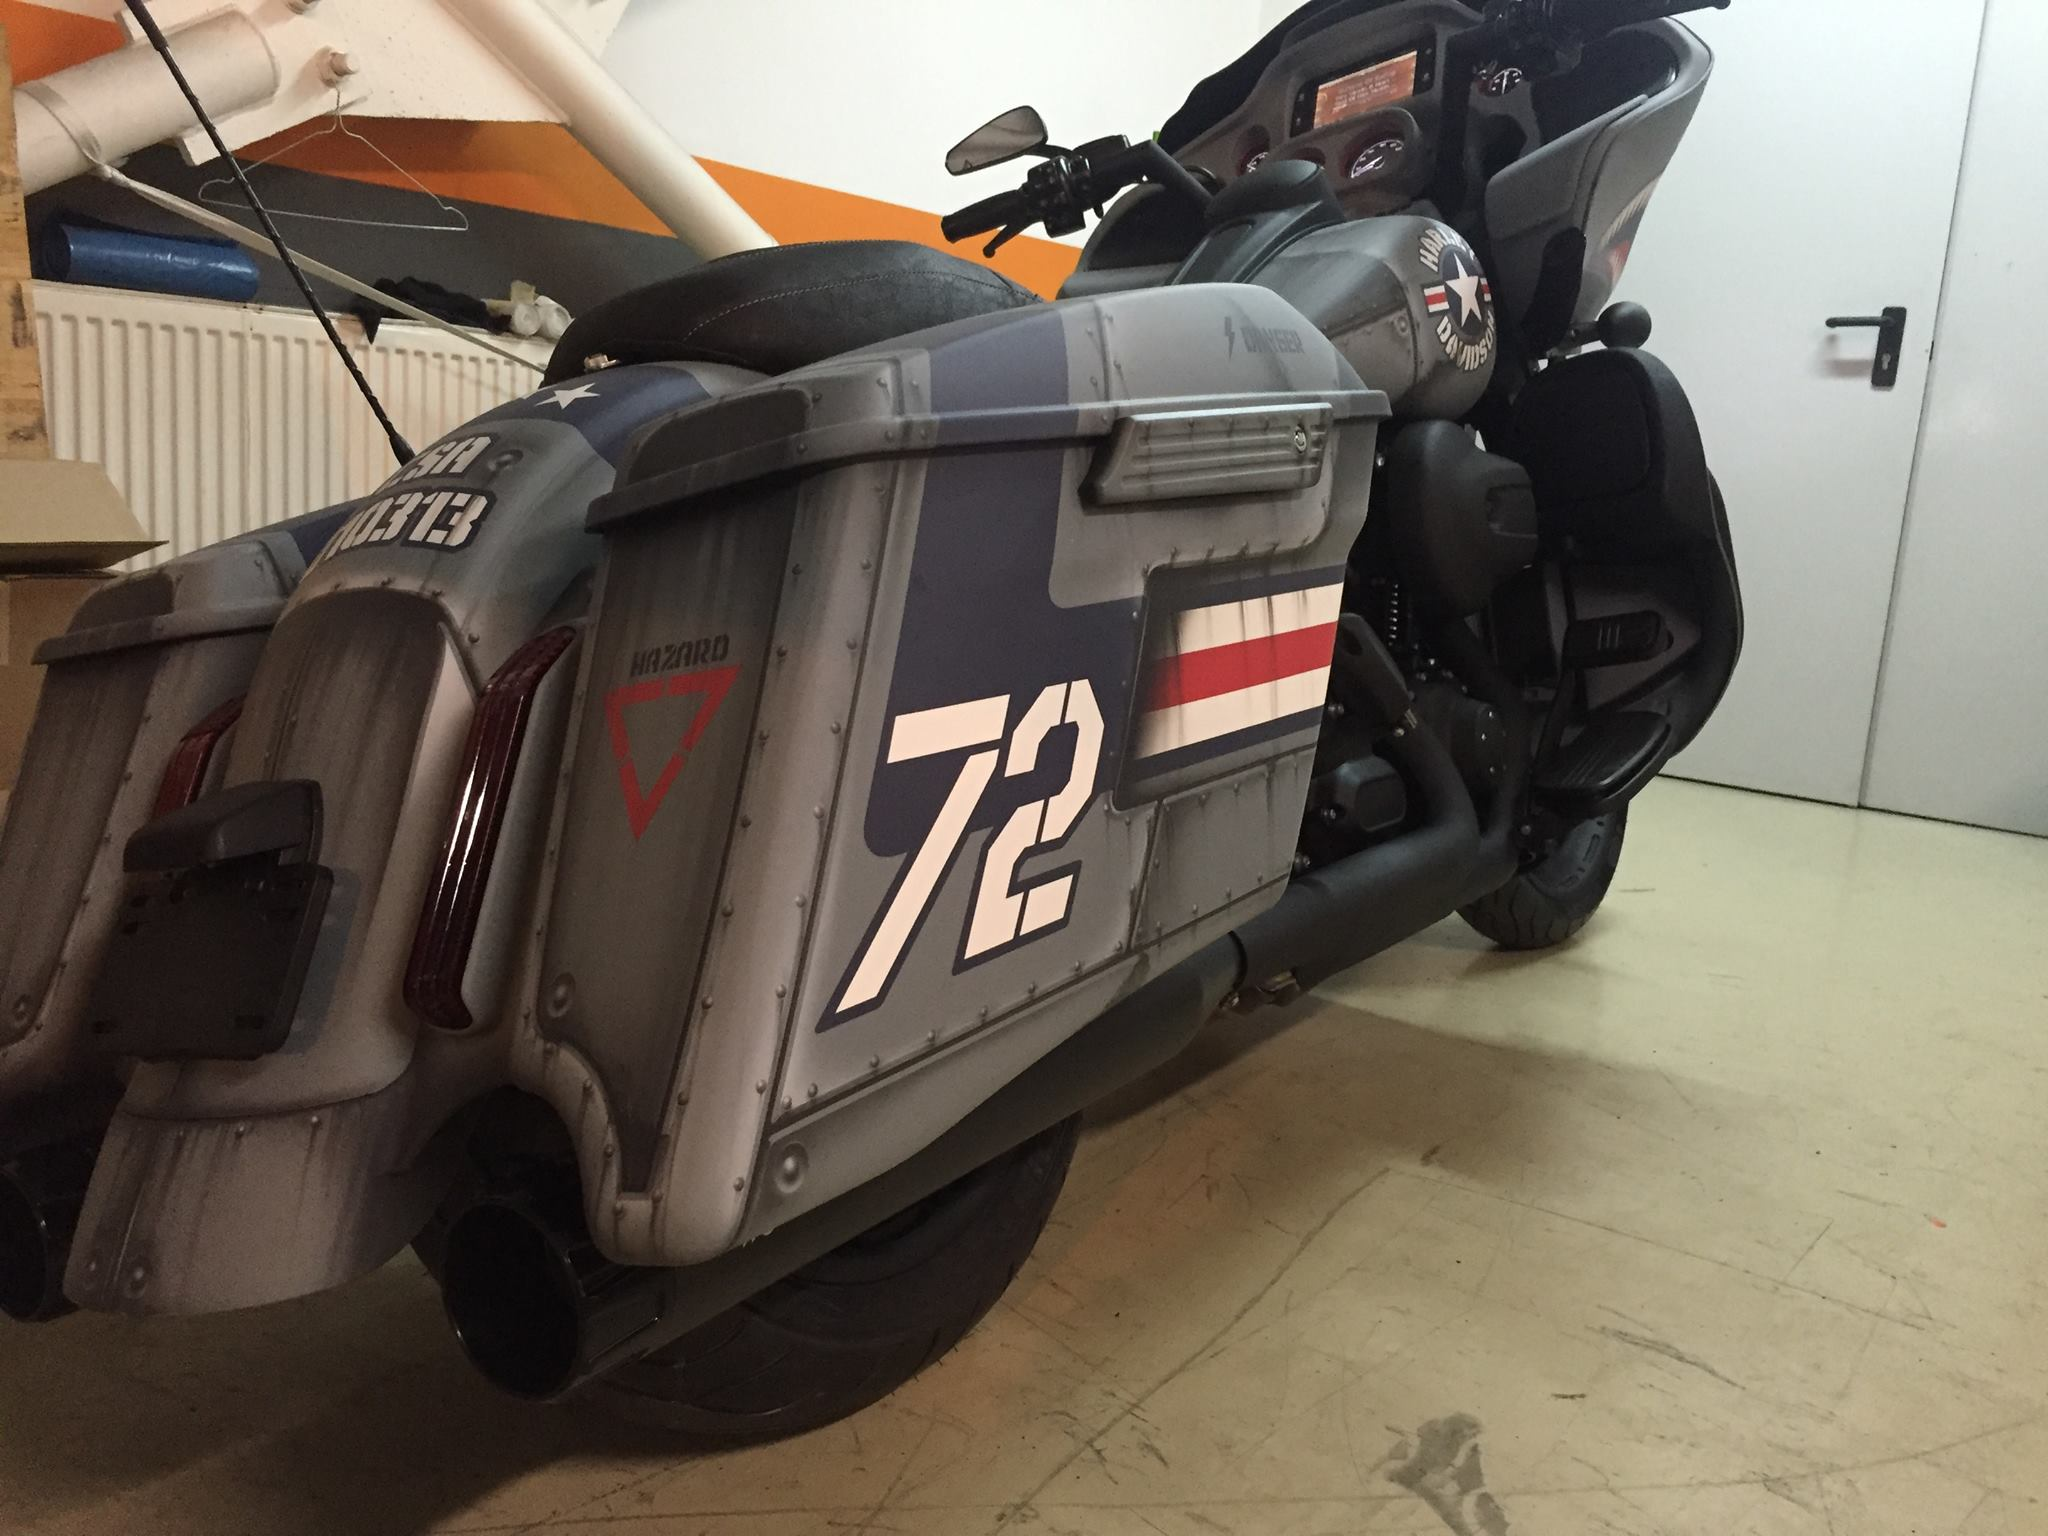 2010 Harley Davidson Cvo Ultra Classic Electra Glide Dark 15793 also Motorcycle together with This Harley Davidson Road Glide Totally Nails It 105863 besides Cvo Street Glide 2016 Flhxse likewise 04. on harley davidson paint colors for 2016